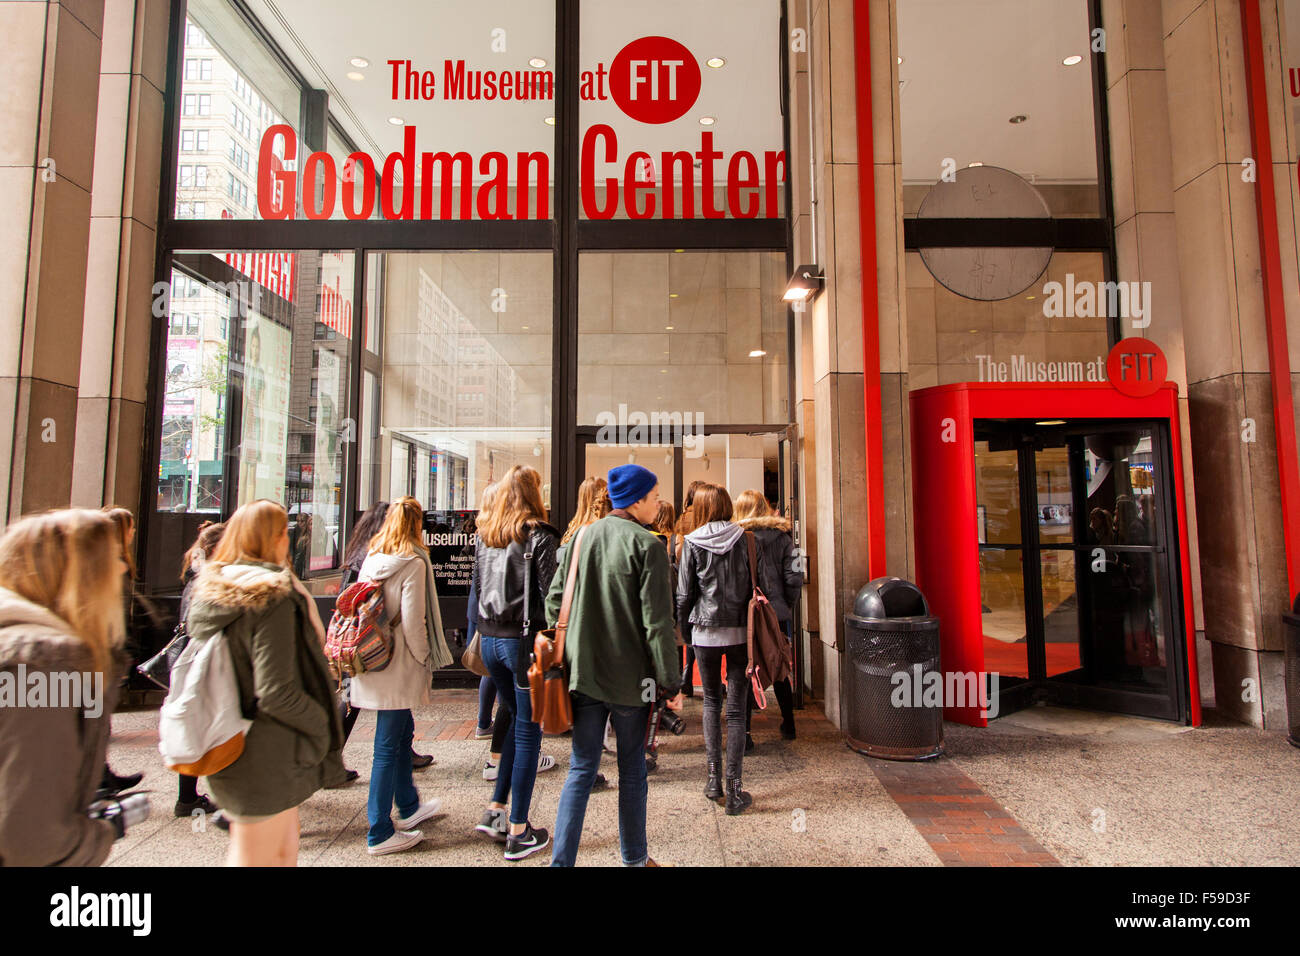 The goodman center and the museum at fit 7th avenue new for Fashion museum new york